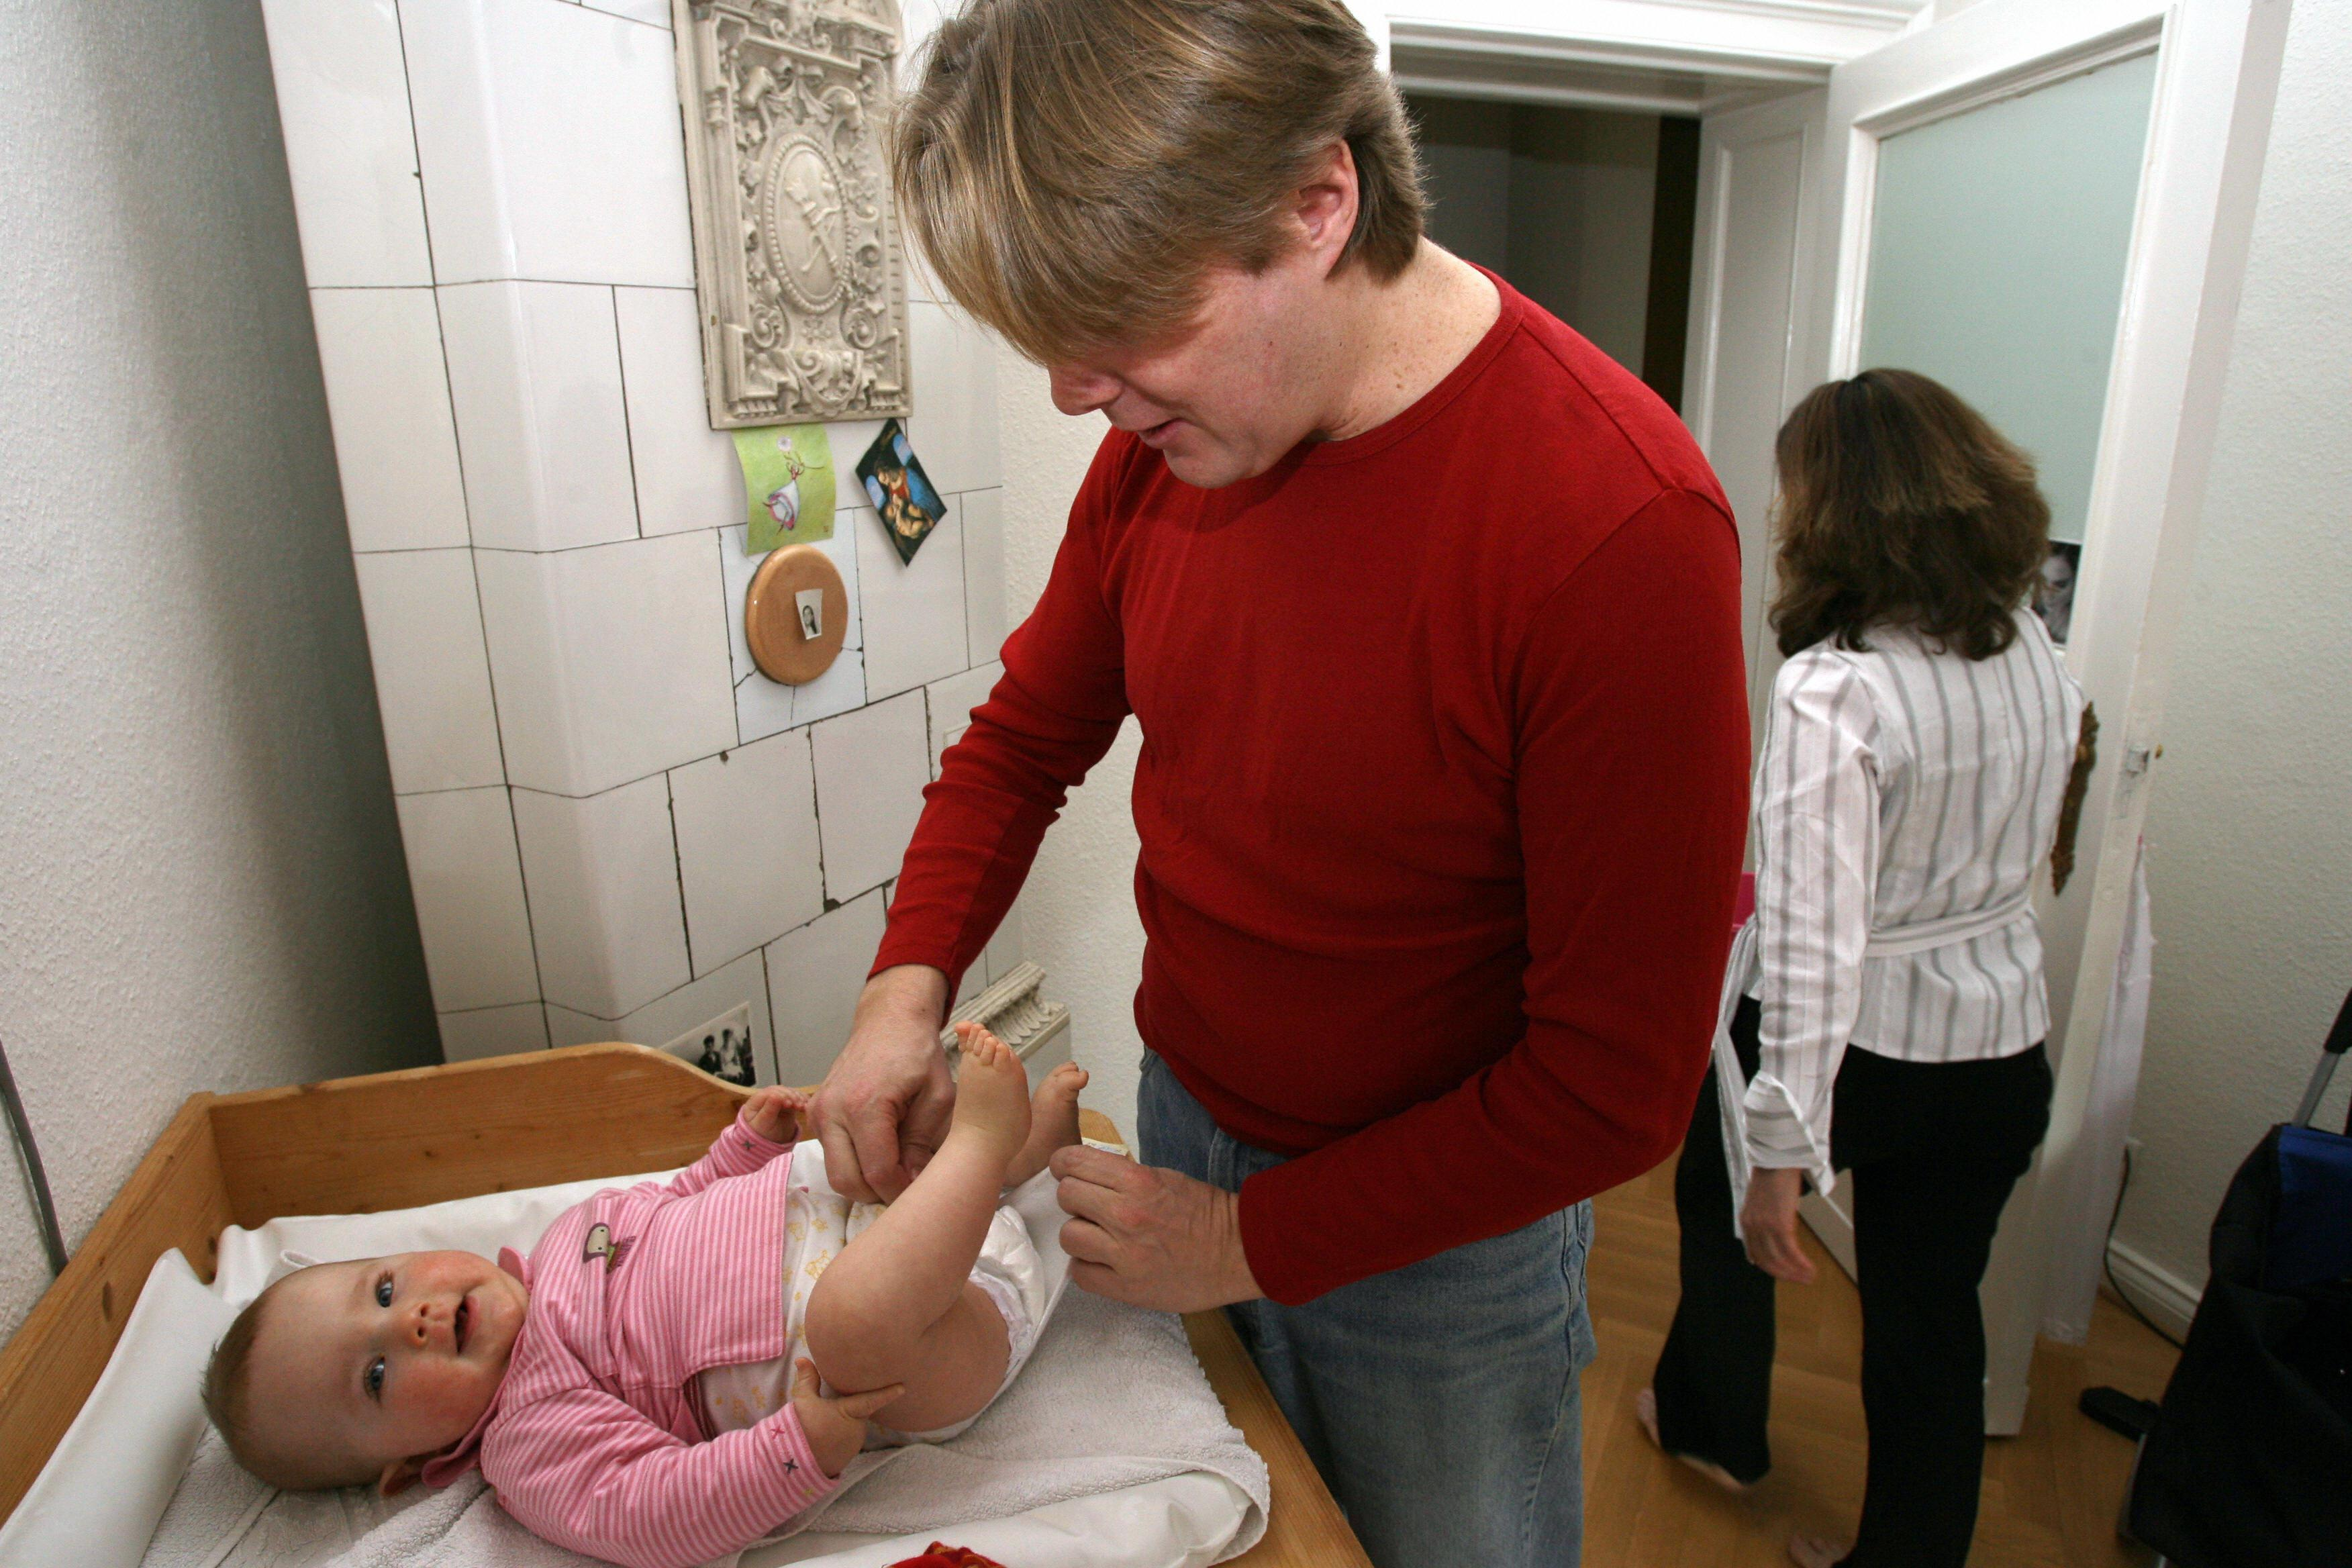 Berlin resident Nicolas W. changes his 8-month-old daughter at home 21 April 2006.